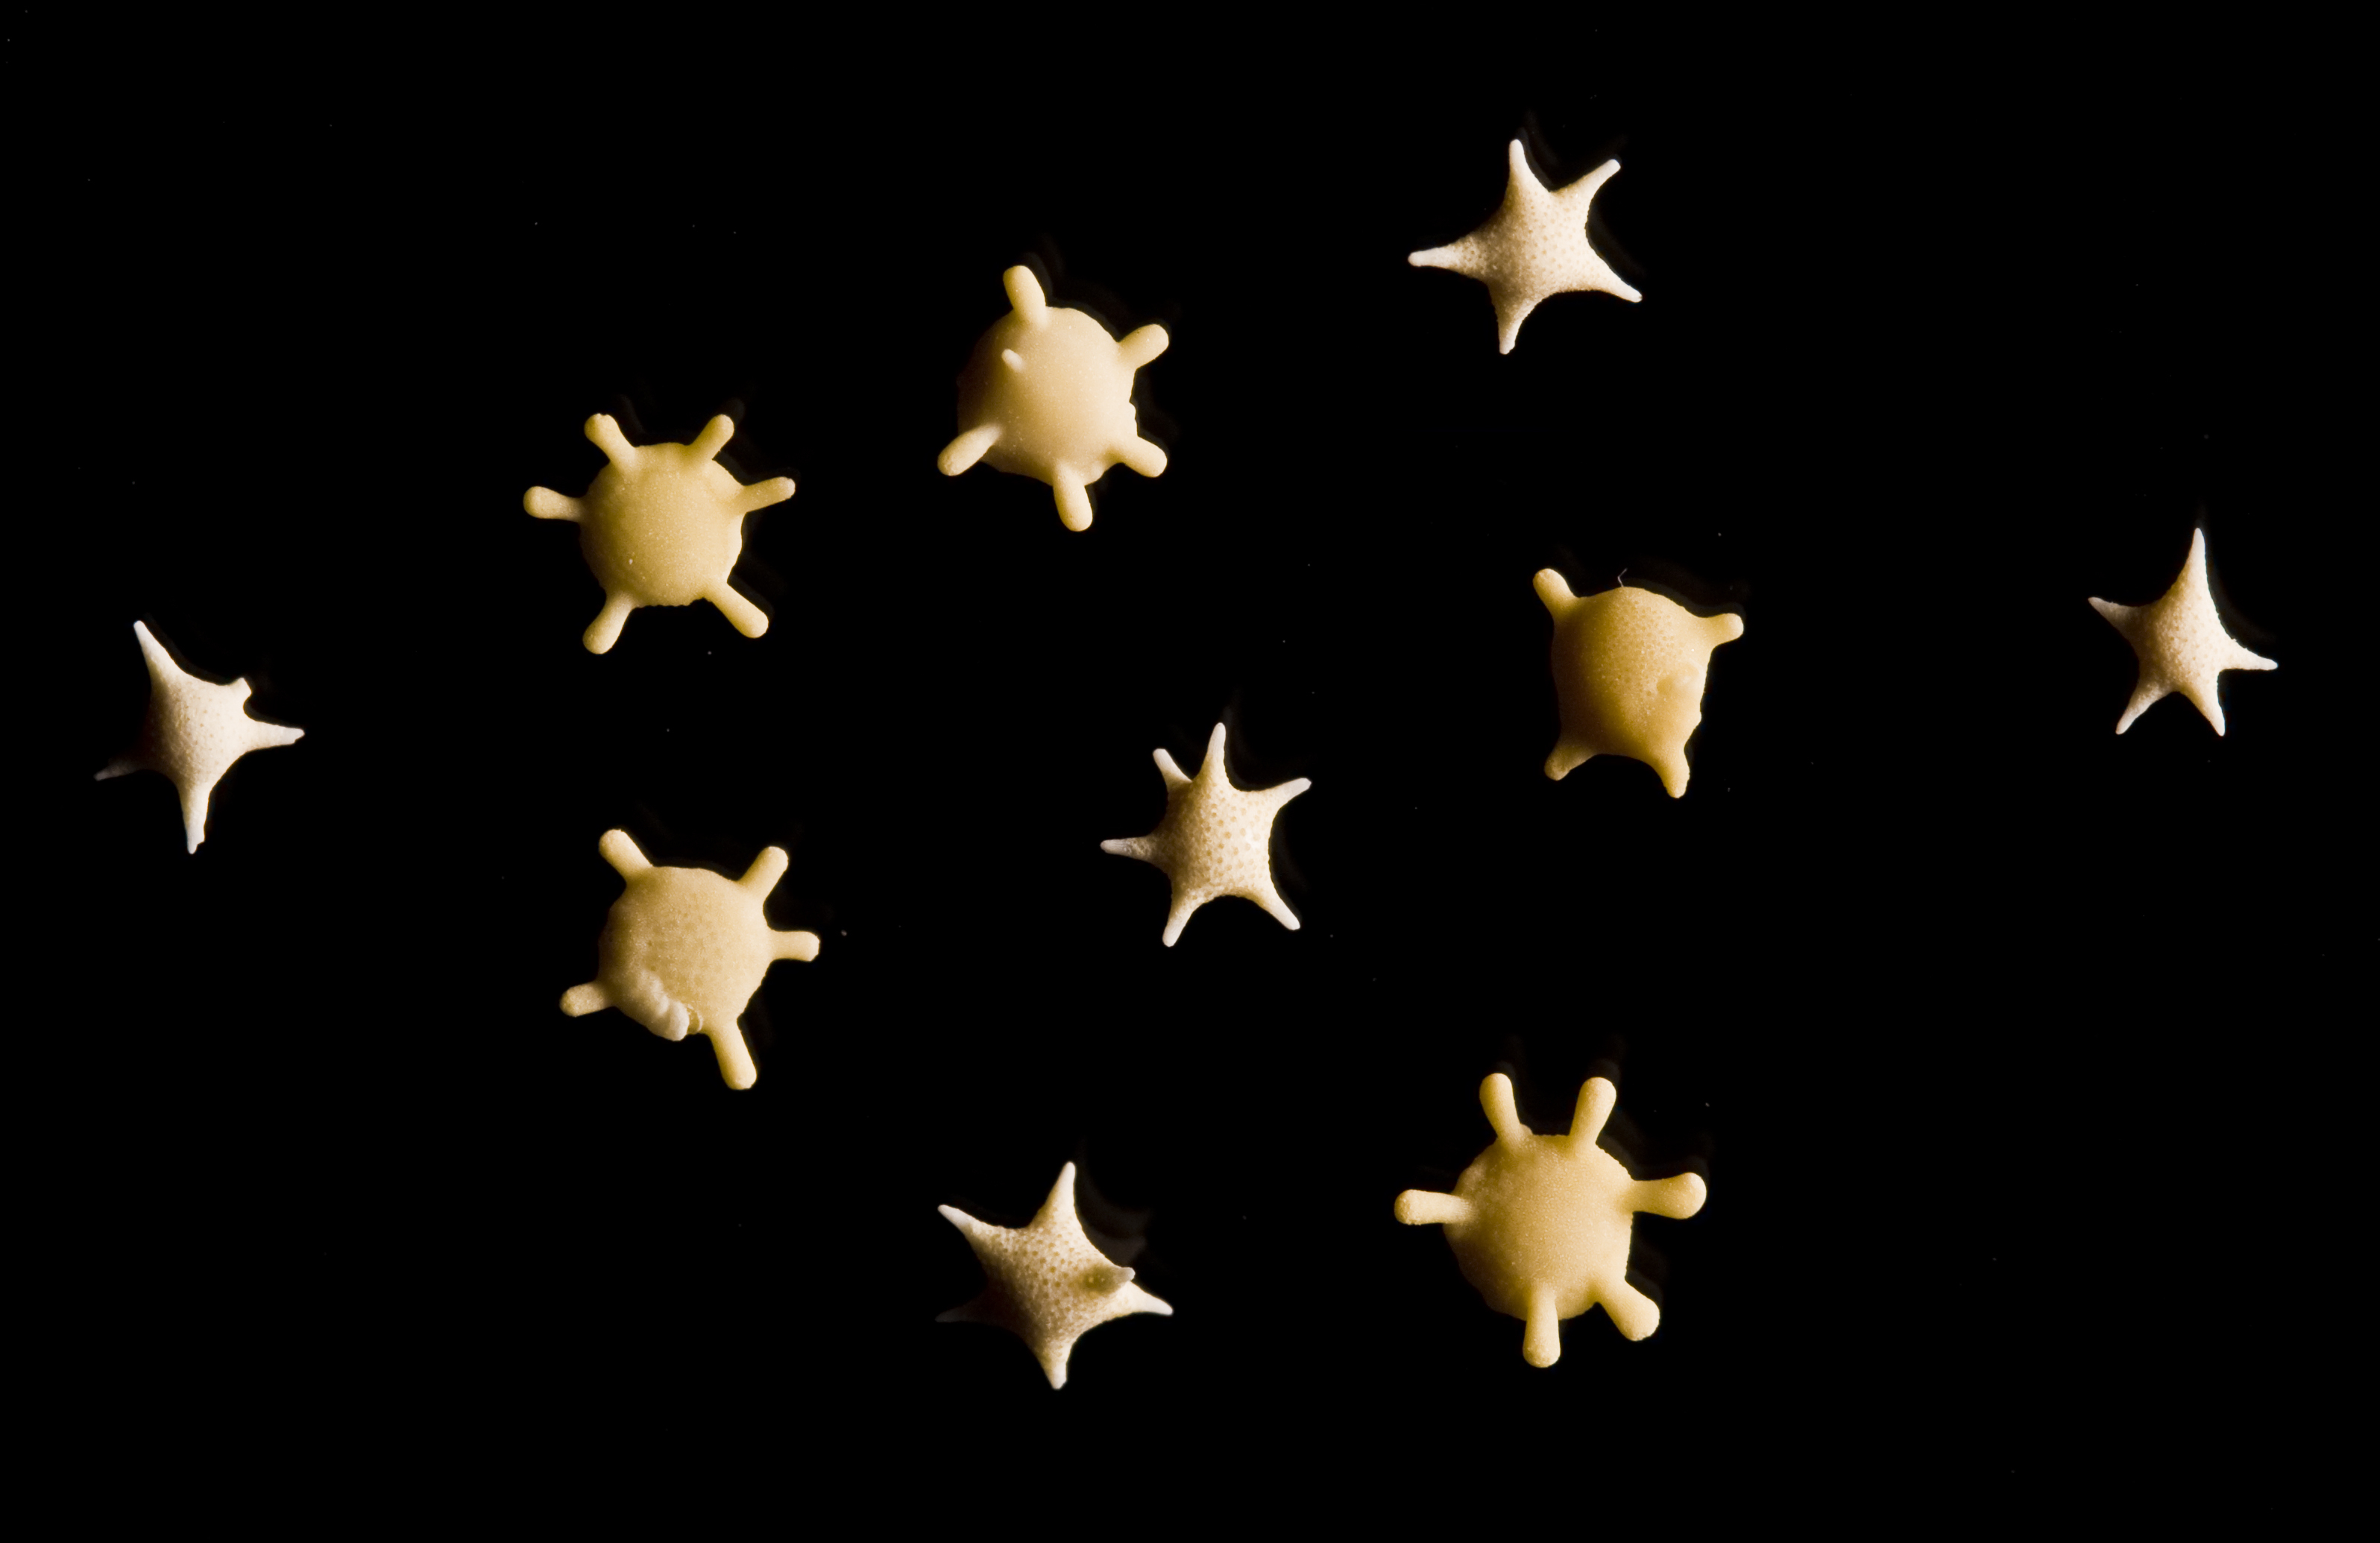 10 grains of star shaped sand collected from southern Japan<div class='credit'><strong>Credit:</strong> 10 grains of star shaped sand collected from southern Japan</div>